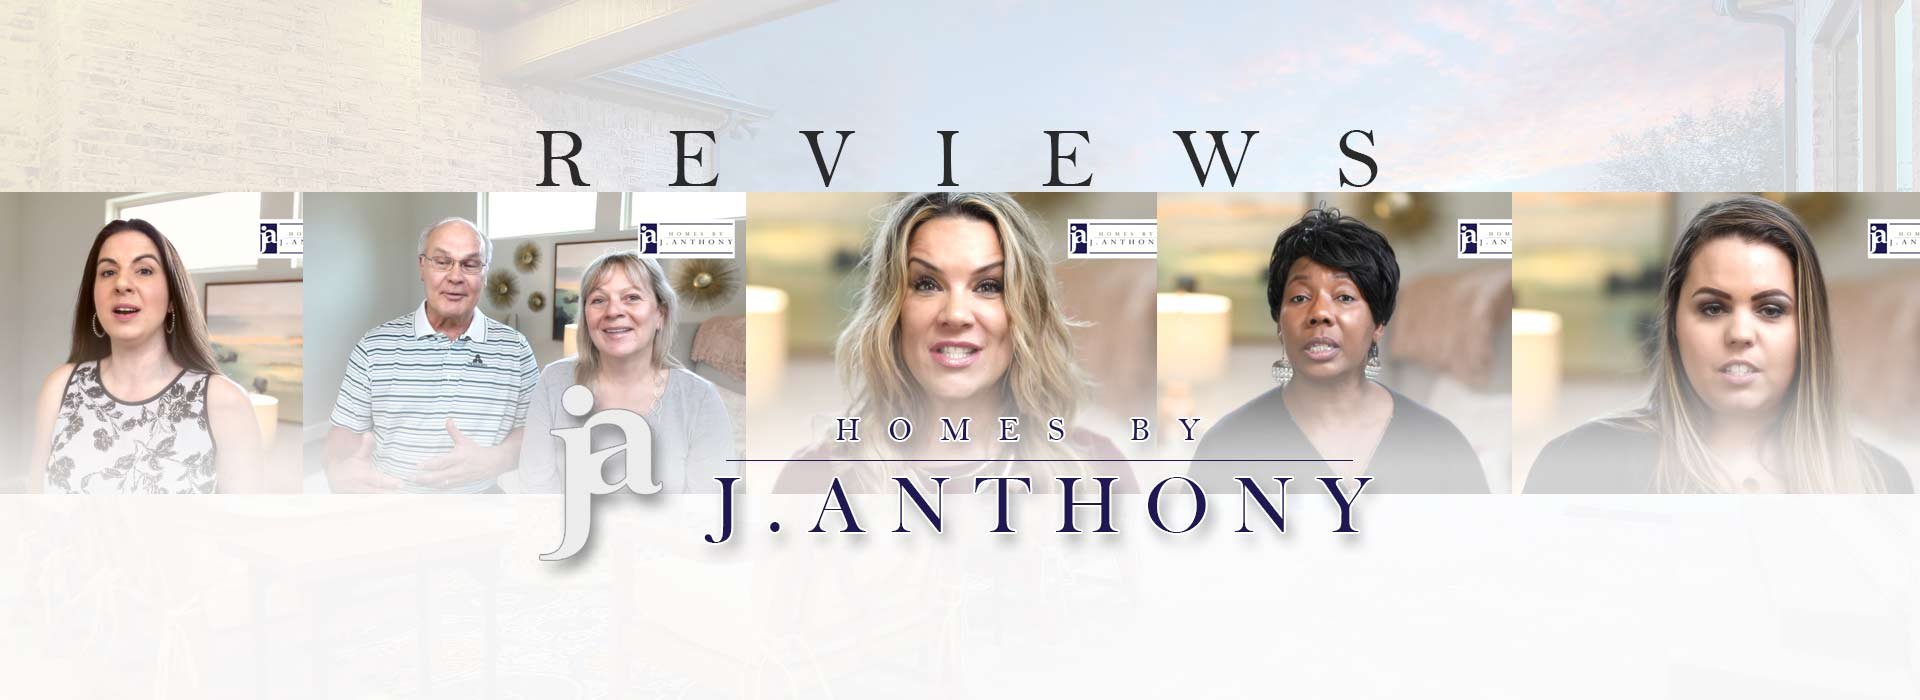 Homes By J Anthony-2018 ARC Awards Winner - Customer Reviews